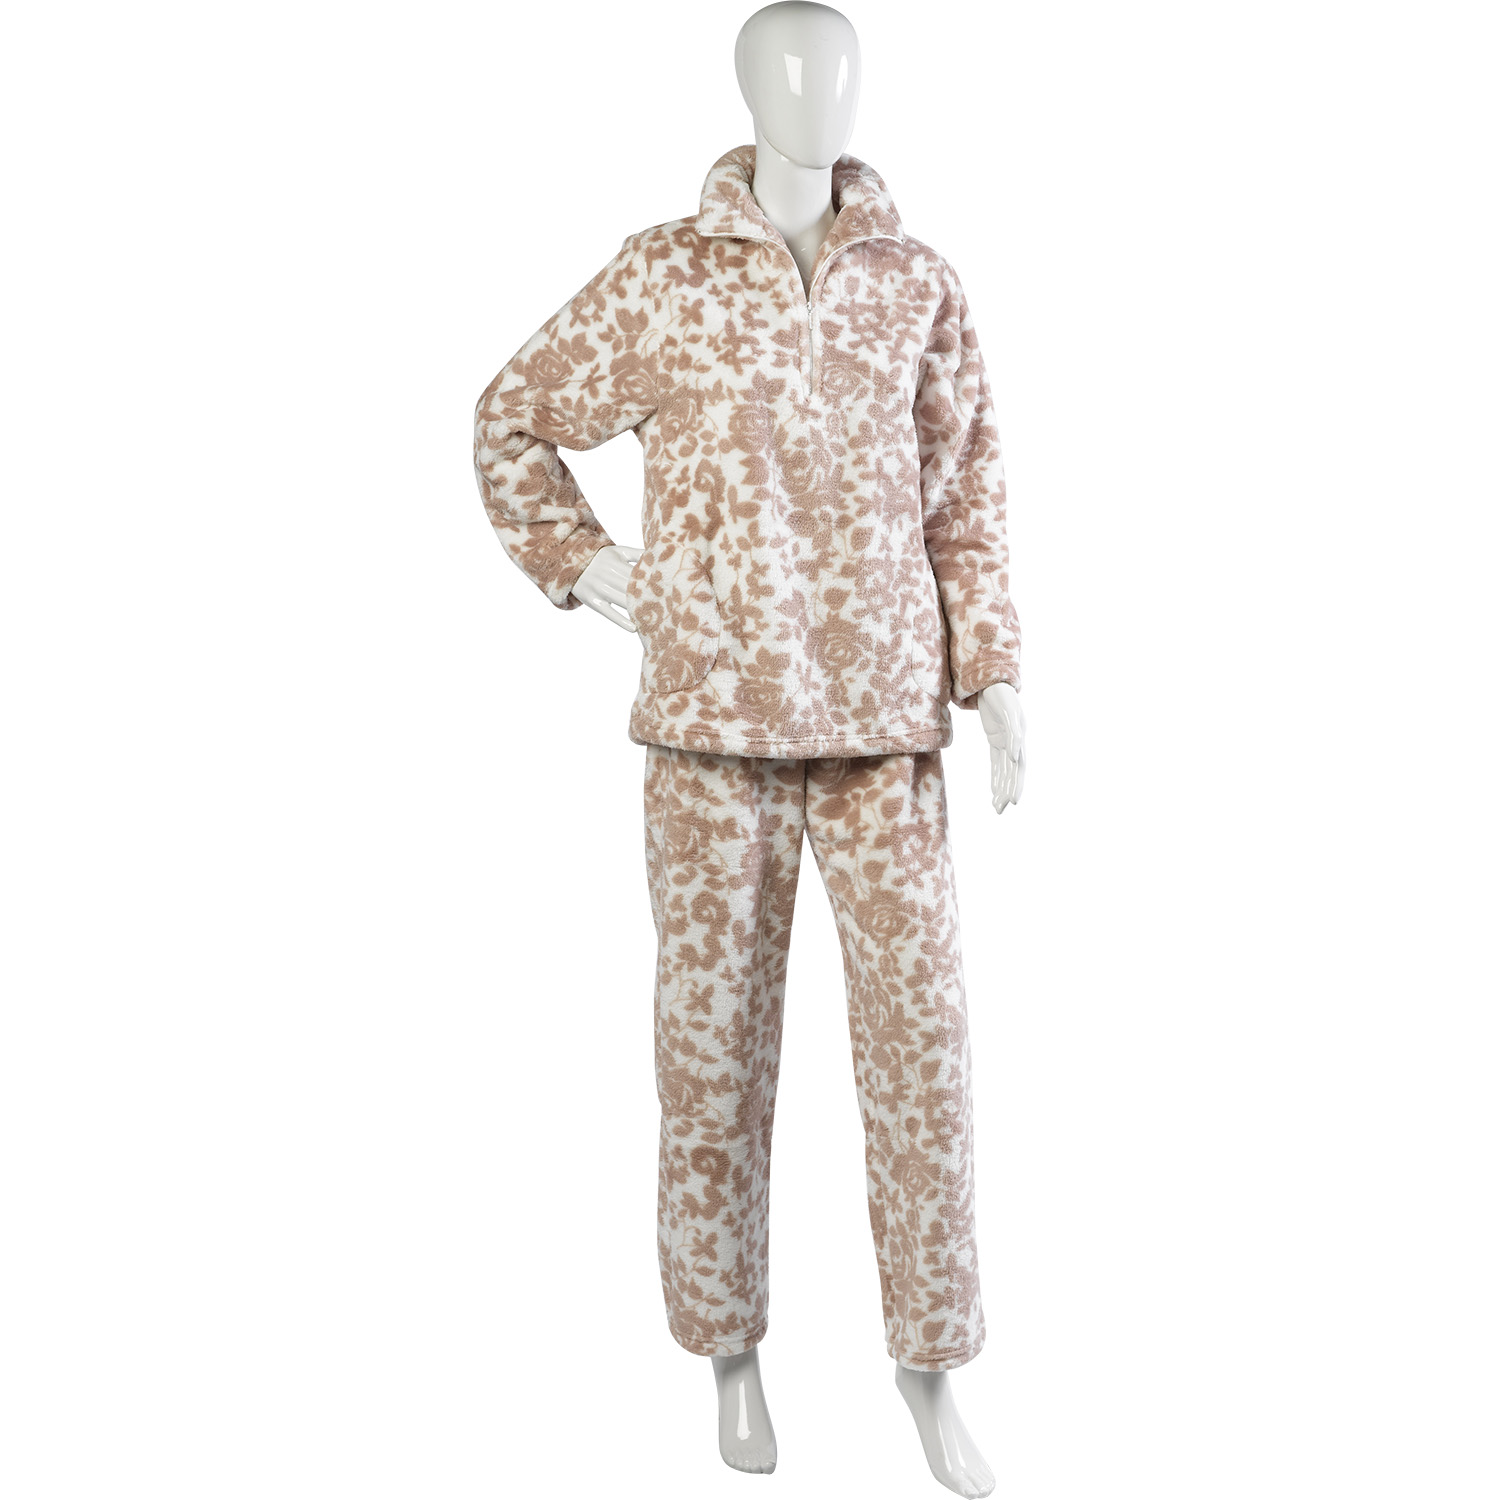 Loungewear: Free Shipping on orders over $45 at coolmfilb6.gq - Your Online Loungewear Store! Get 5% in rewards with Club O! Delilah Women's Loungewear Set - Short Sleeve. 20 Reviews. Quick View Pink Camouflage Fleece One-piece Adult Footed Pajamas by Big Feet Pajama Co. 8 Reviews.